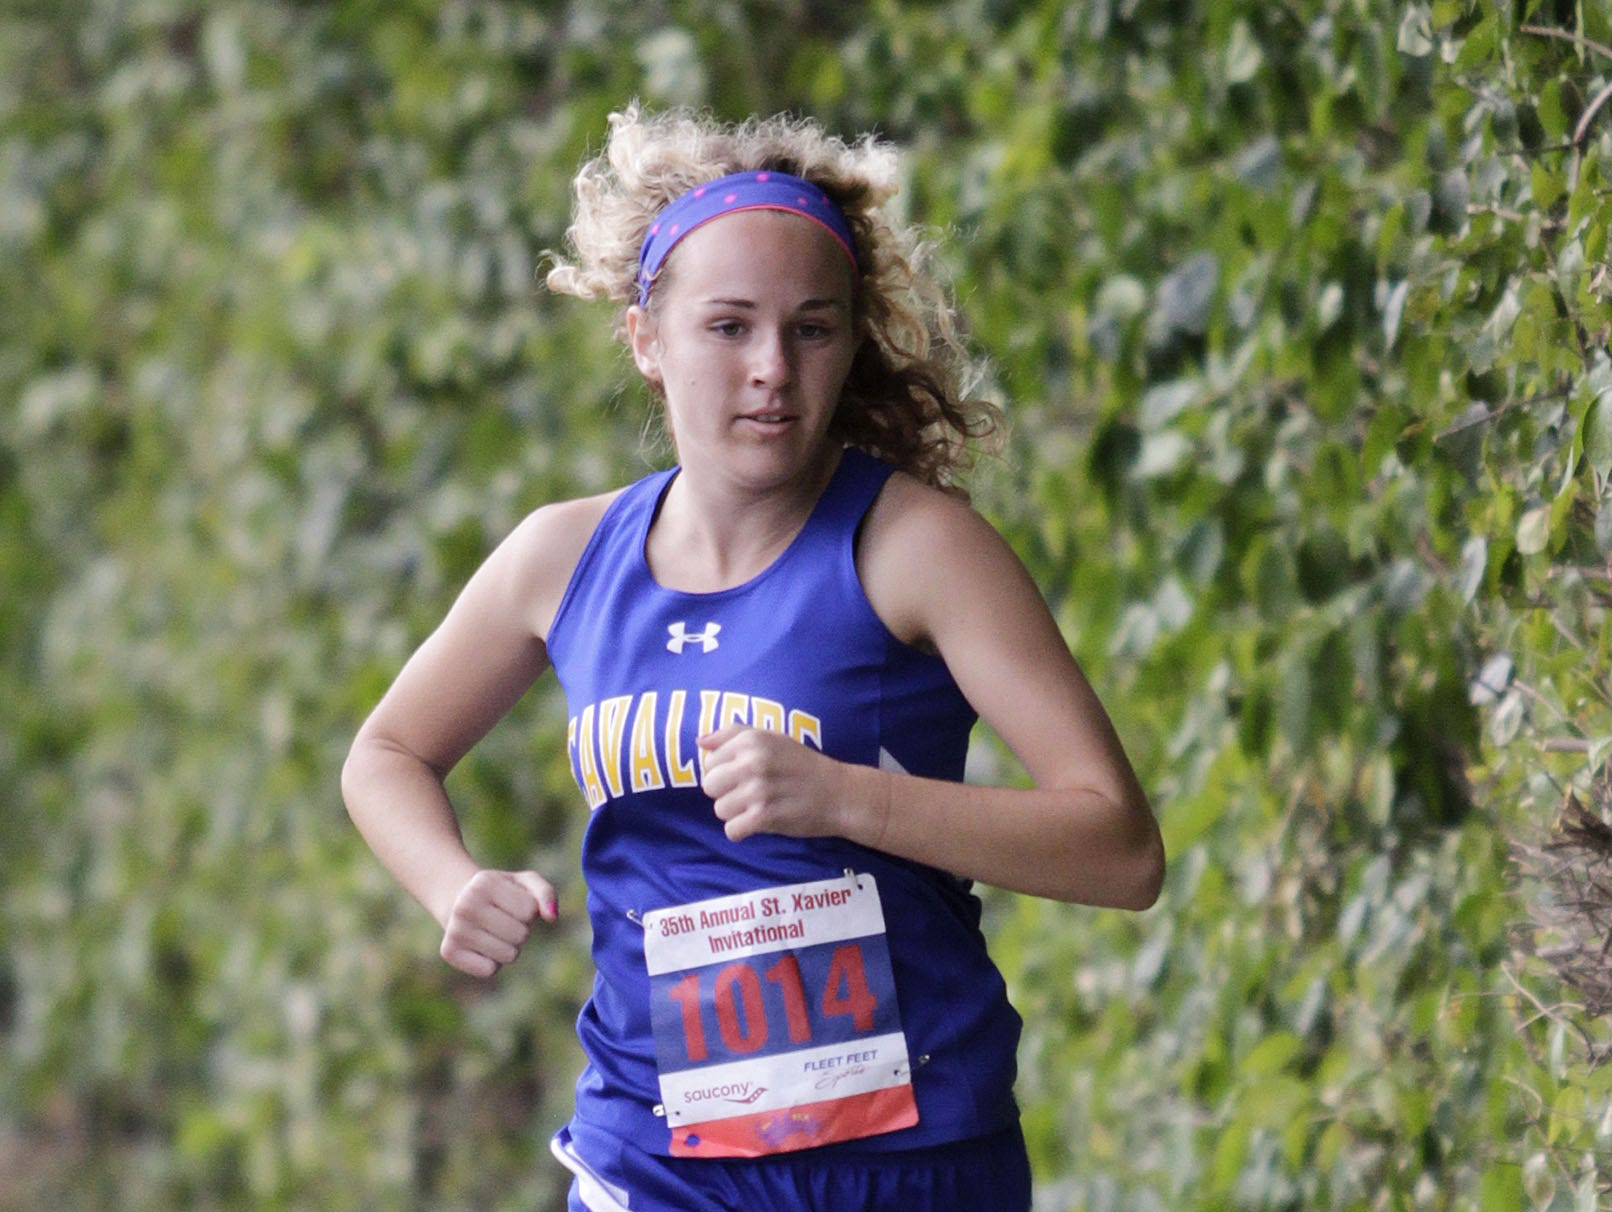 Kansas Greenwell of Purcell Marion sports her signature bright socks for a race.